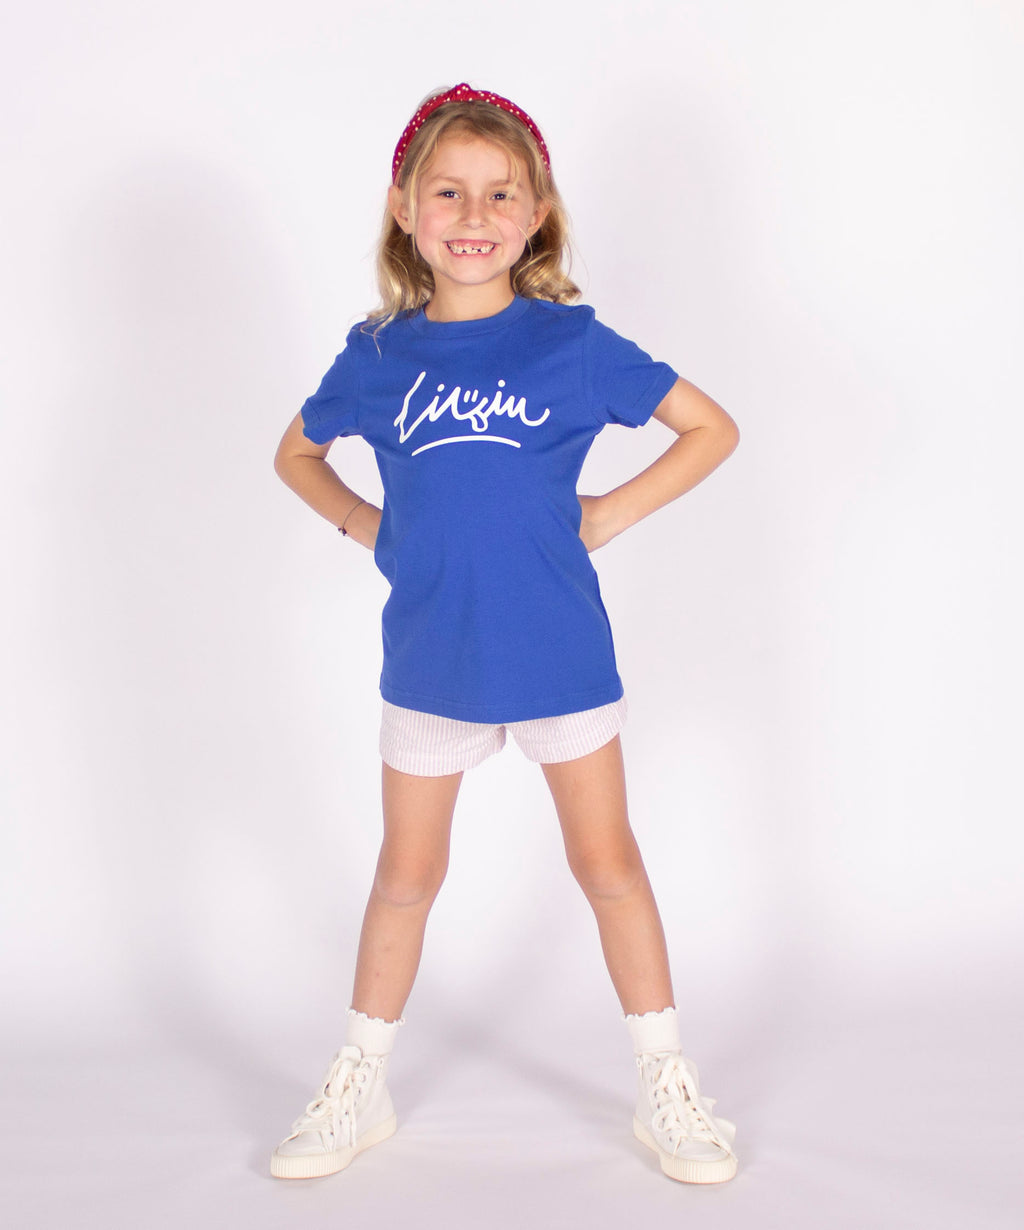 Kids Smiley Tee - Blue by LIVIN